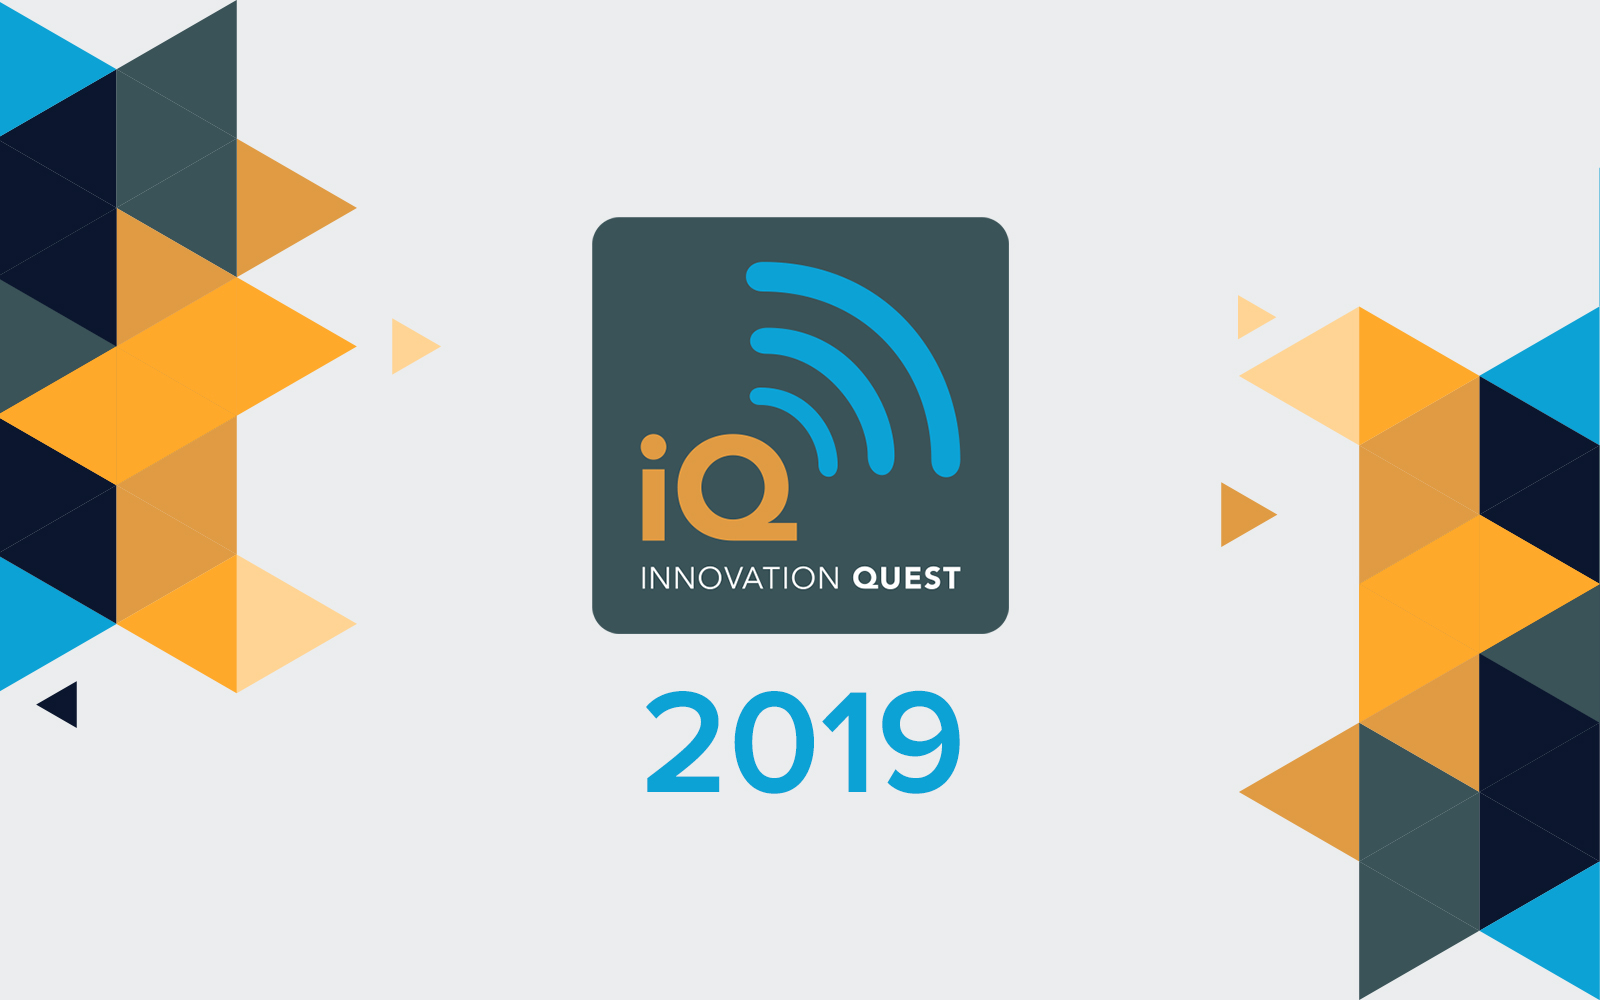 Innovation Quest 2019